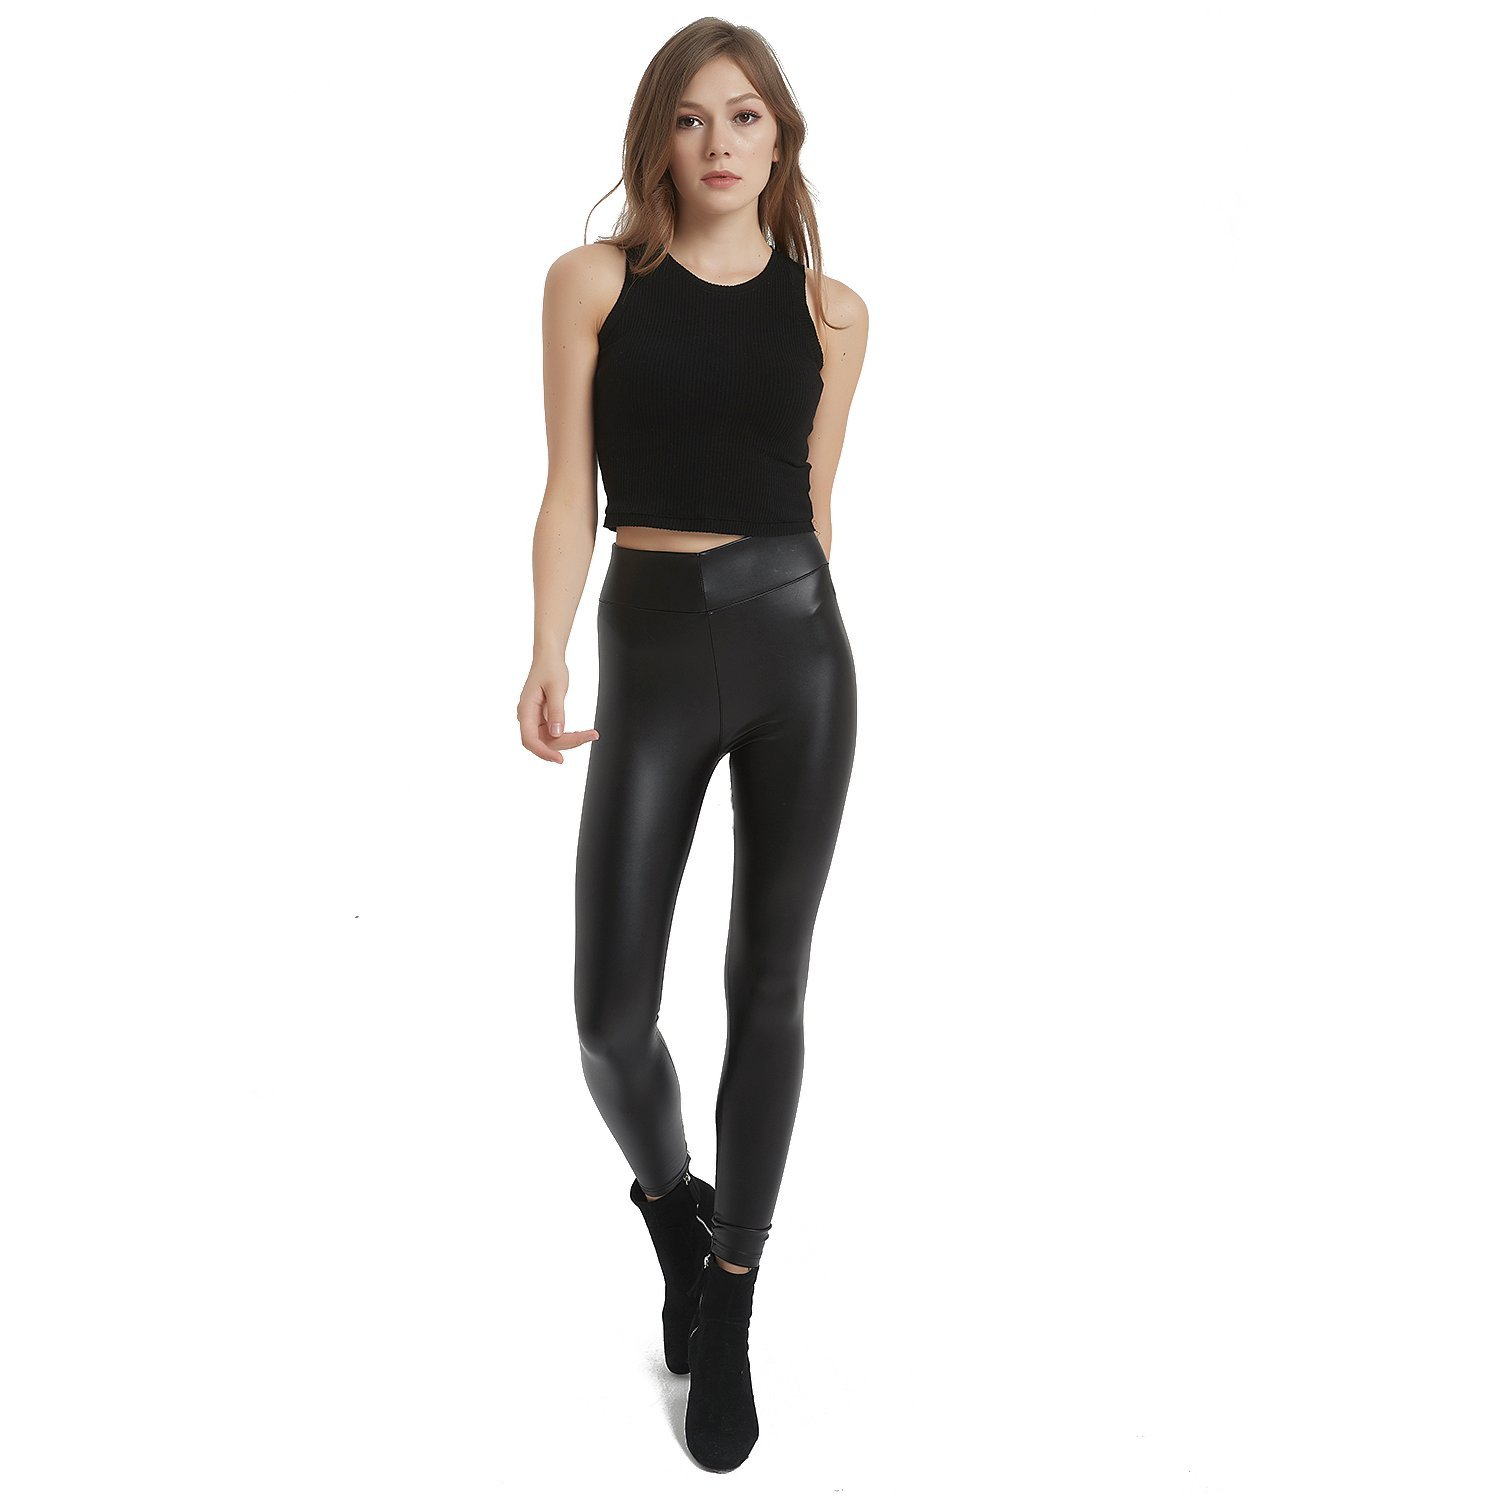 d1f4403bfcfcc MCEDAR Women's Faux Leather Legging Pants Girls Black High Waist Sexy Skinny  Outfit for Causal, Club, Night Out at Amazon Women's Clothing store: